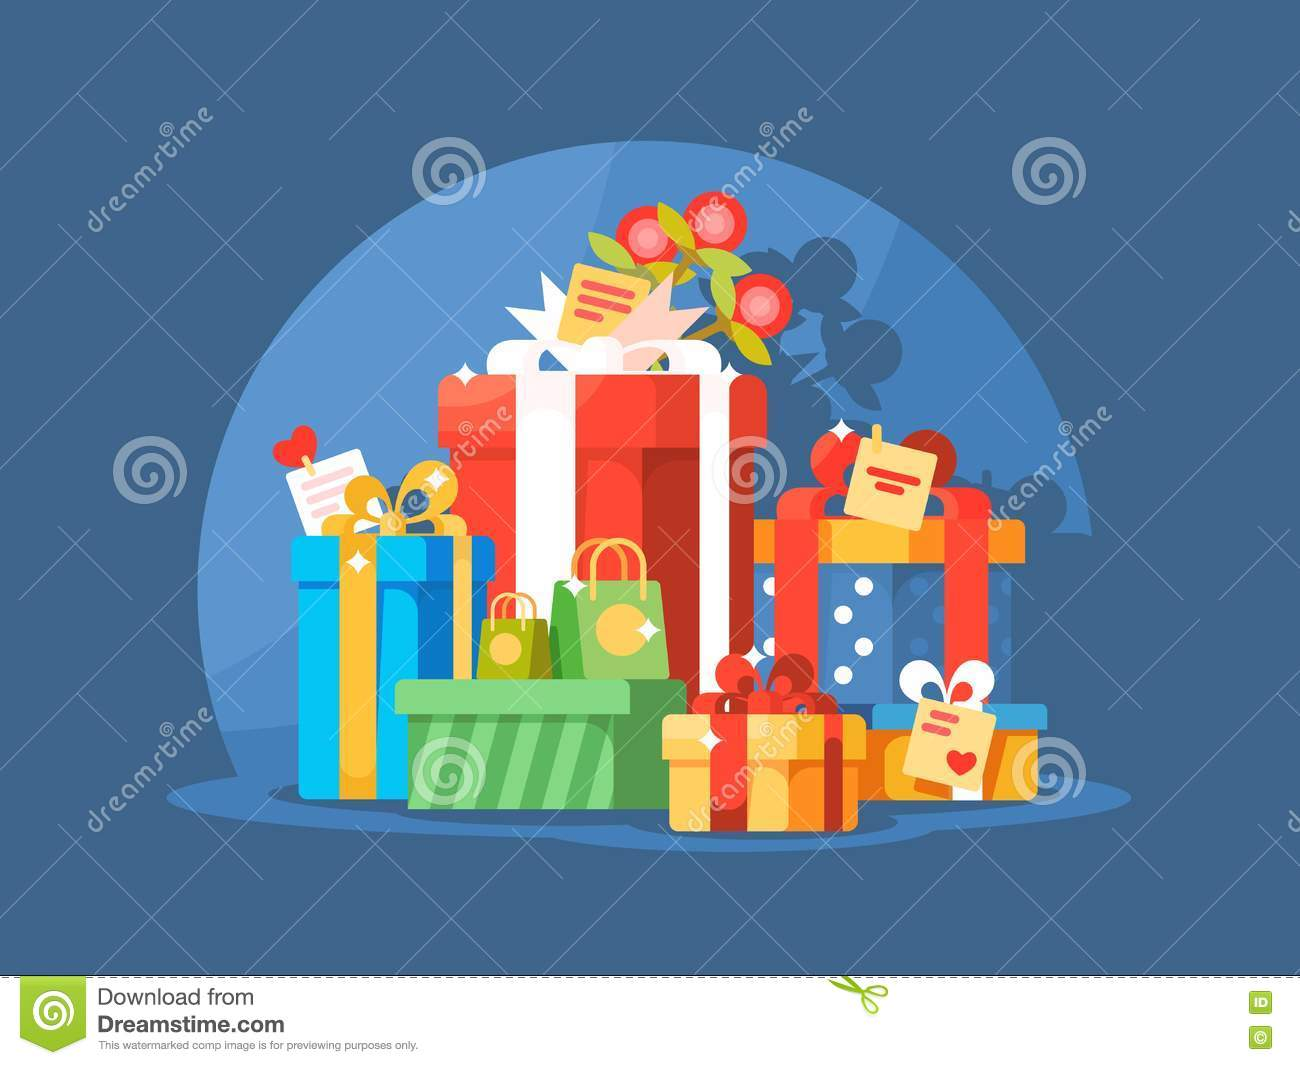 Heap of gift boxes